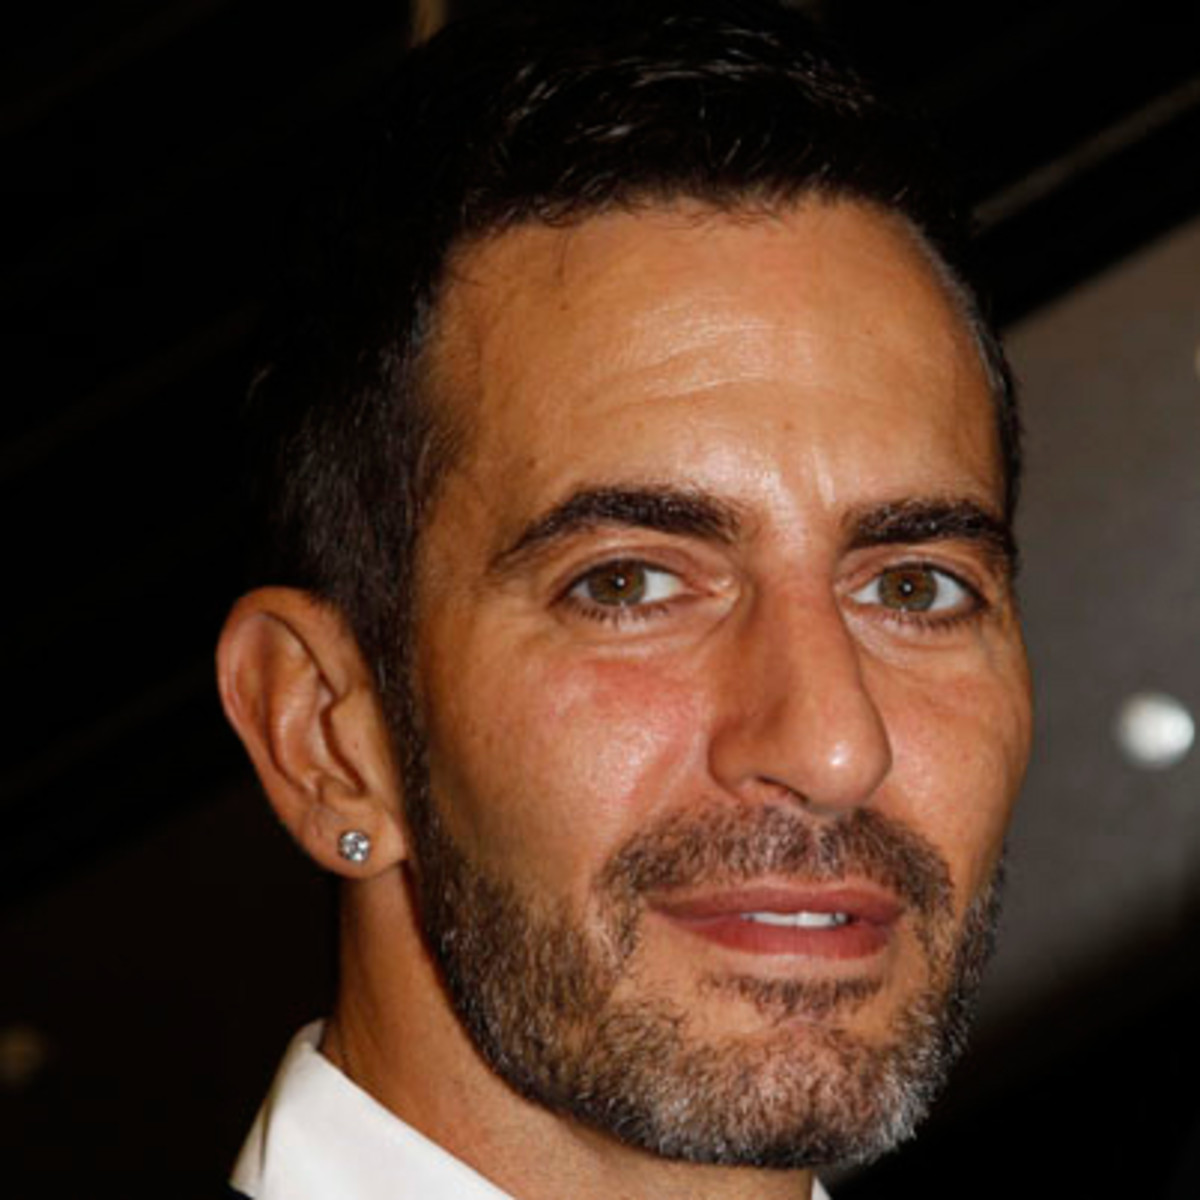 Marc Jacobs Bags Fashion Career Biography